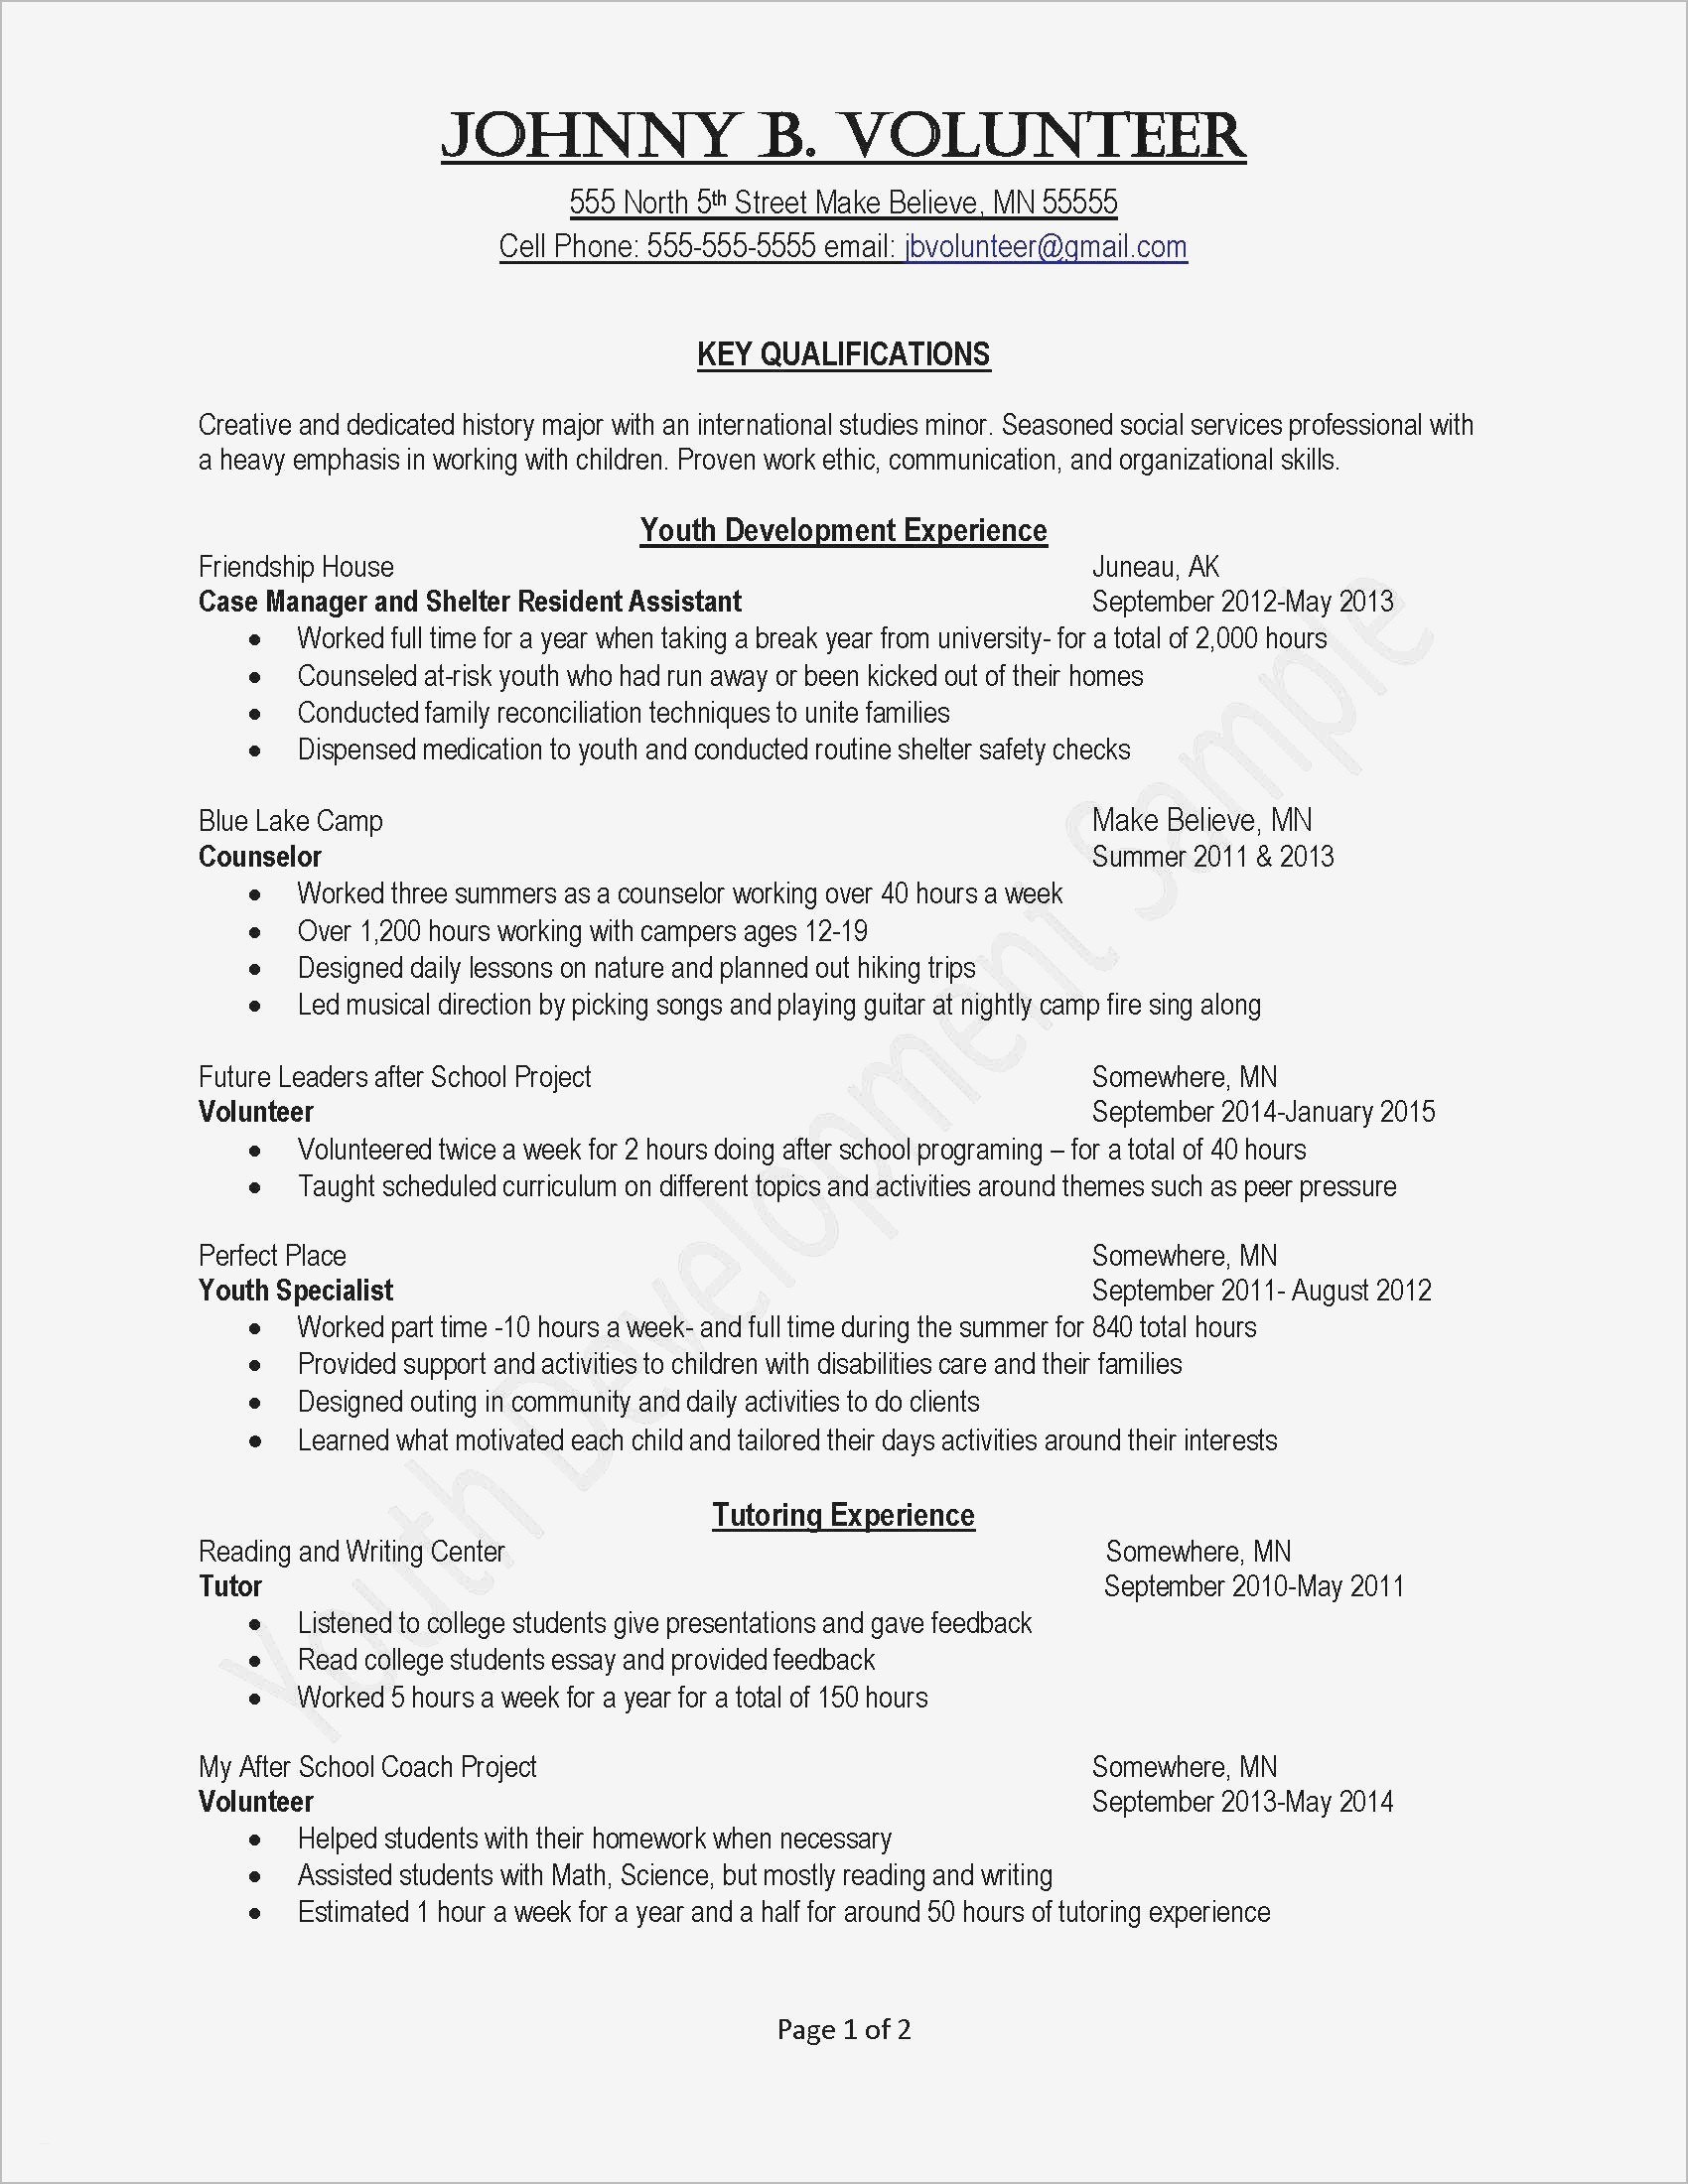 Free Job Cover Letter Template - Free Resume Website Template Valid Job Fer Letter Template Us Copy